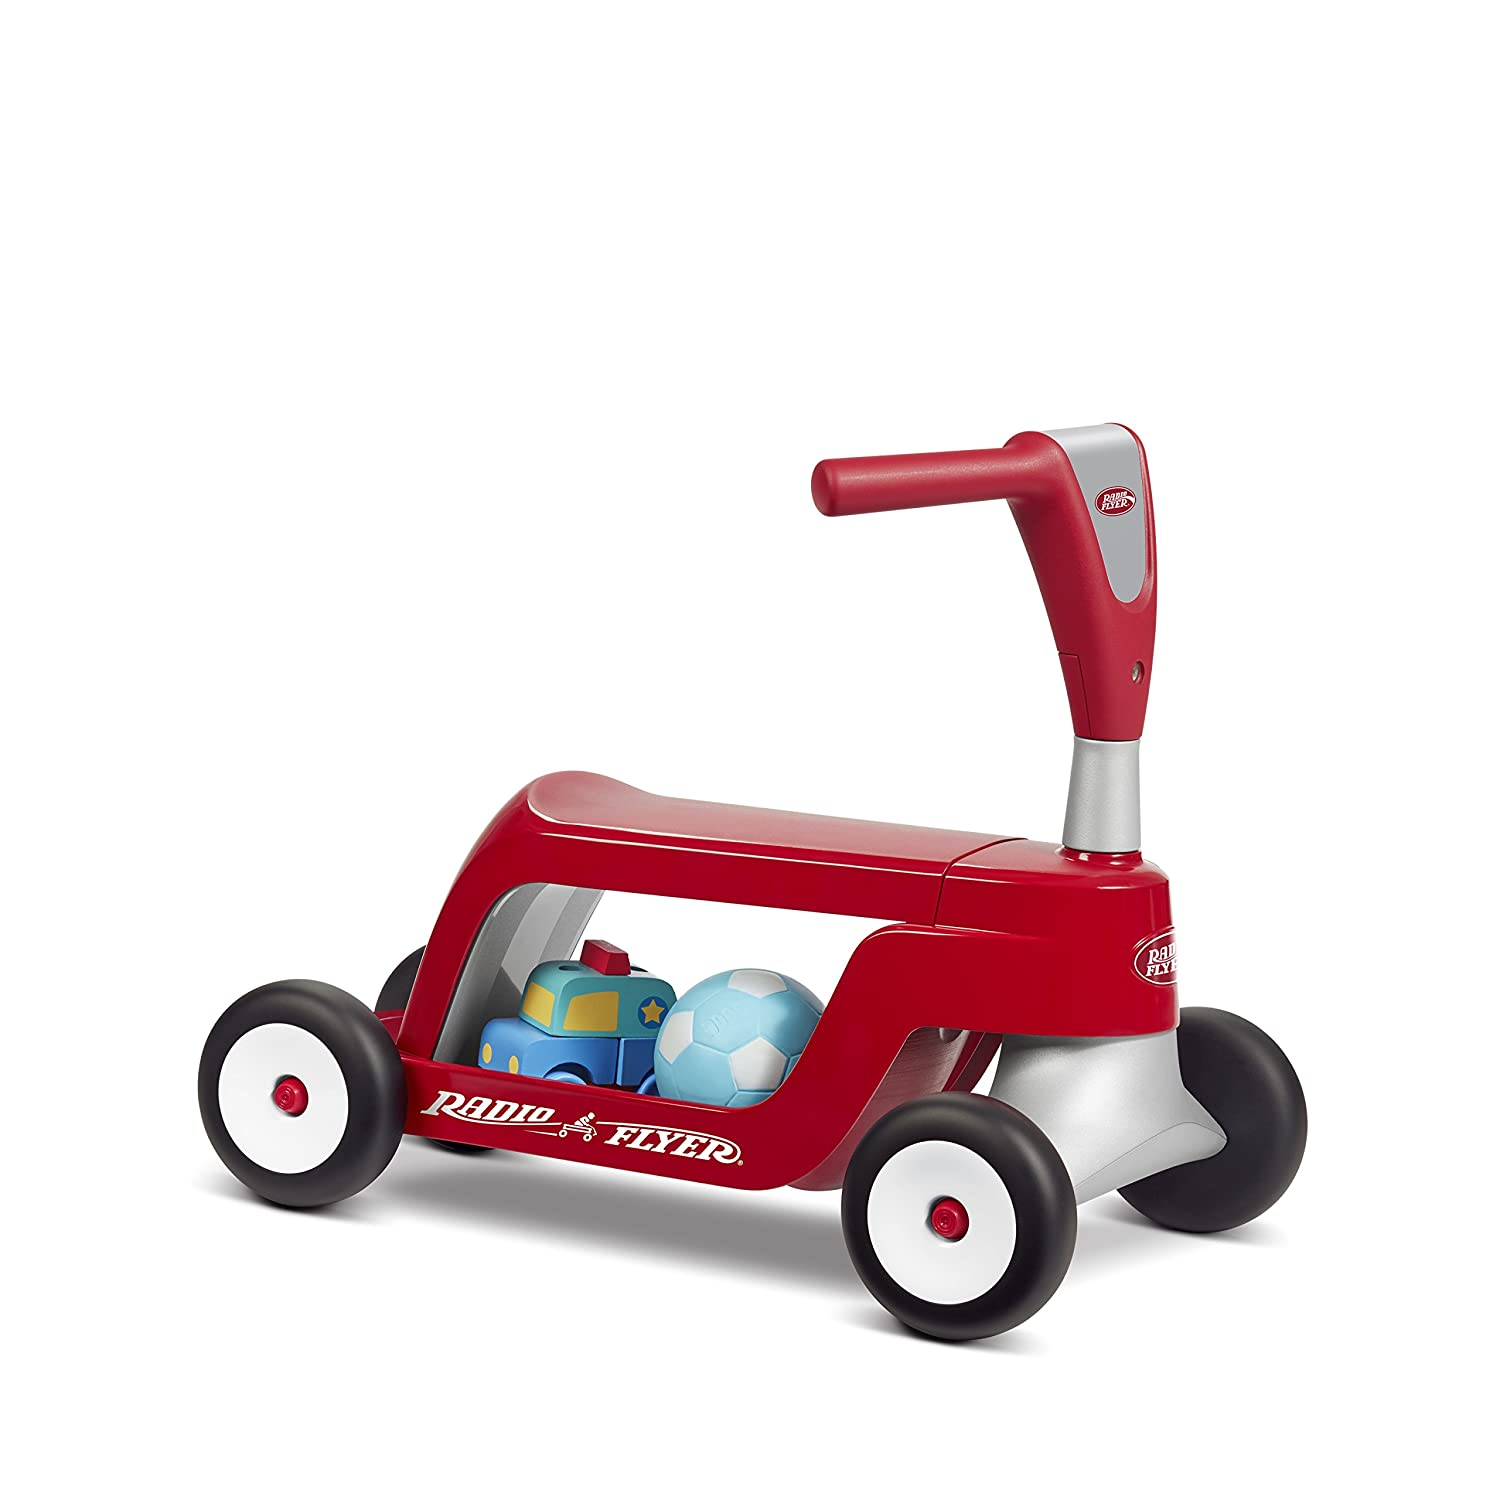 Amazon.com: Patinete 2 en 1 montable de Radio Flyer: Toys ...